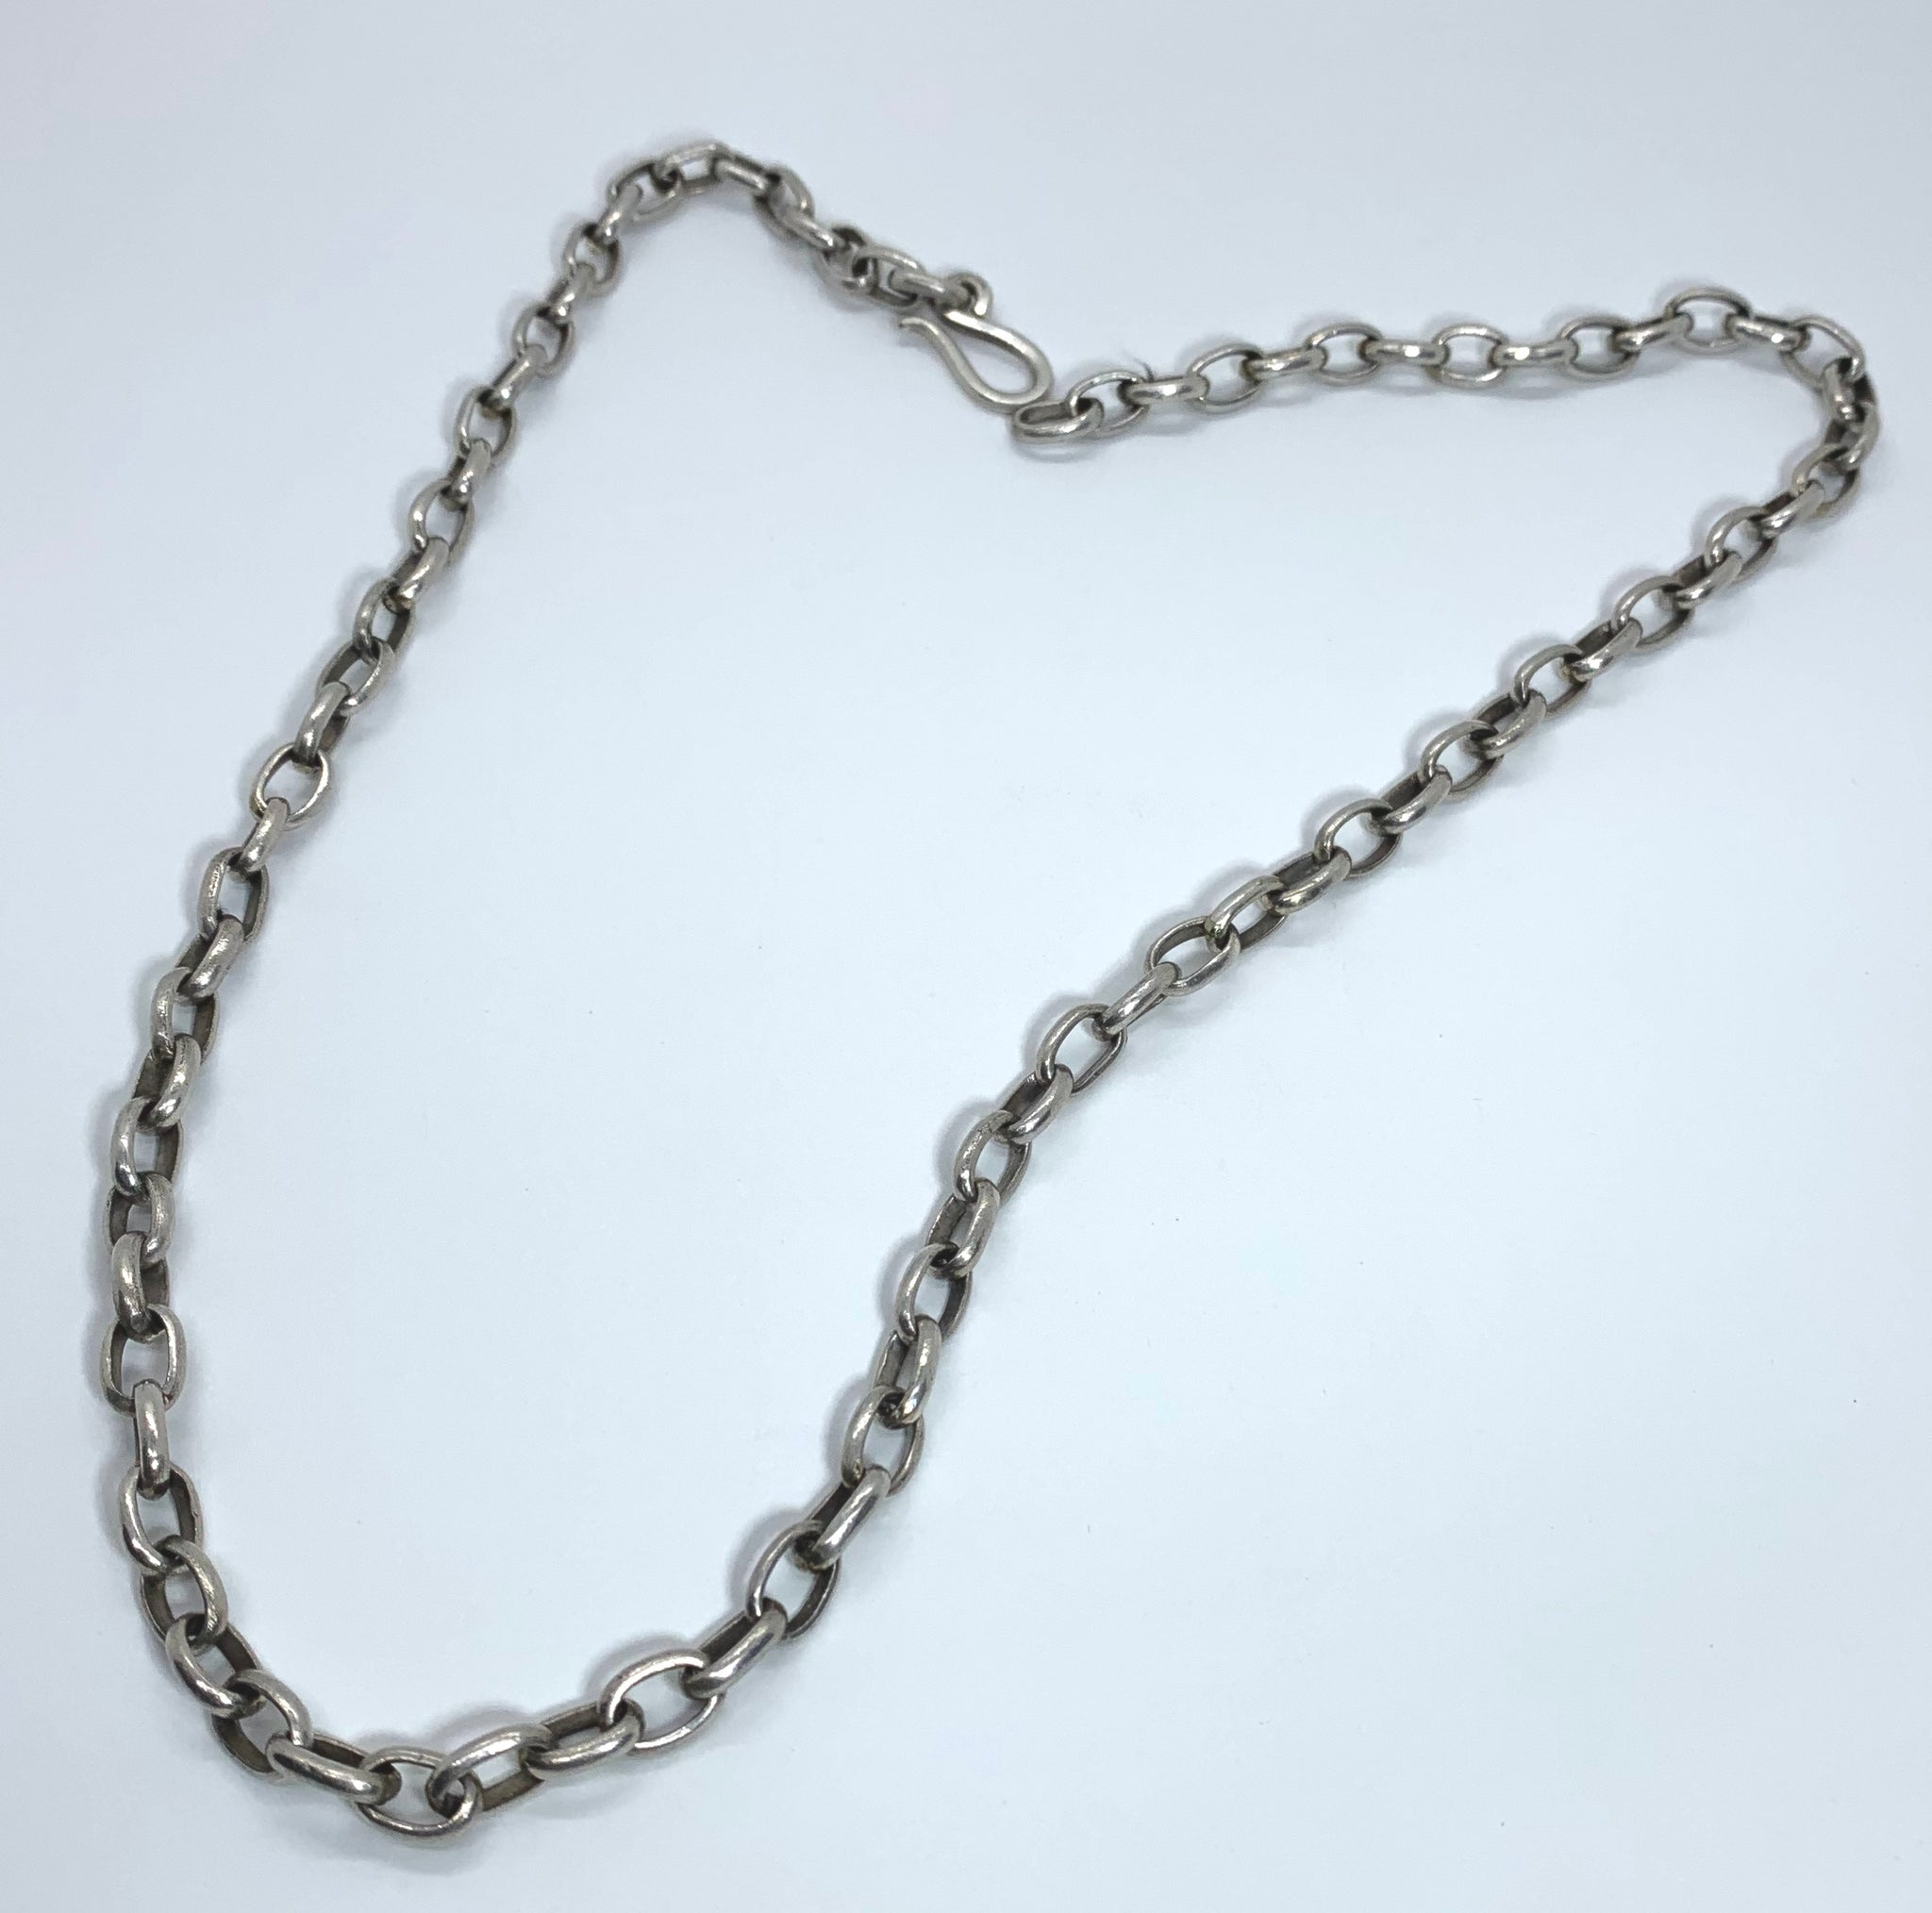 Hand made Sterling Chain.